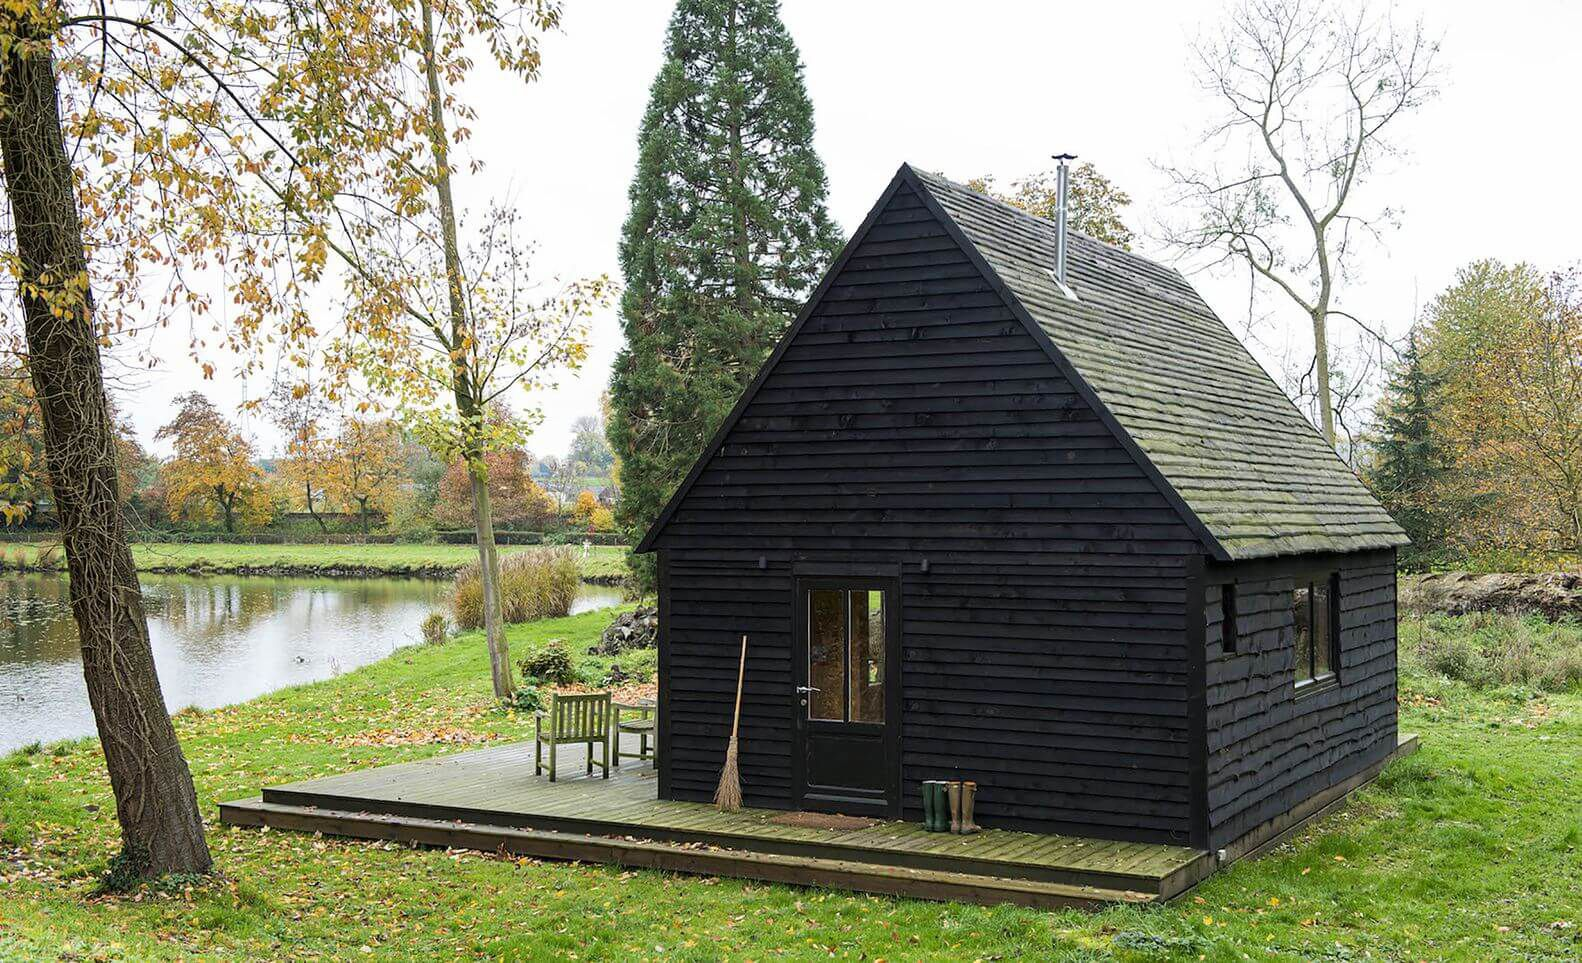 wooden lake cabin in Belgium rural